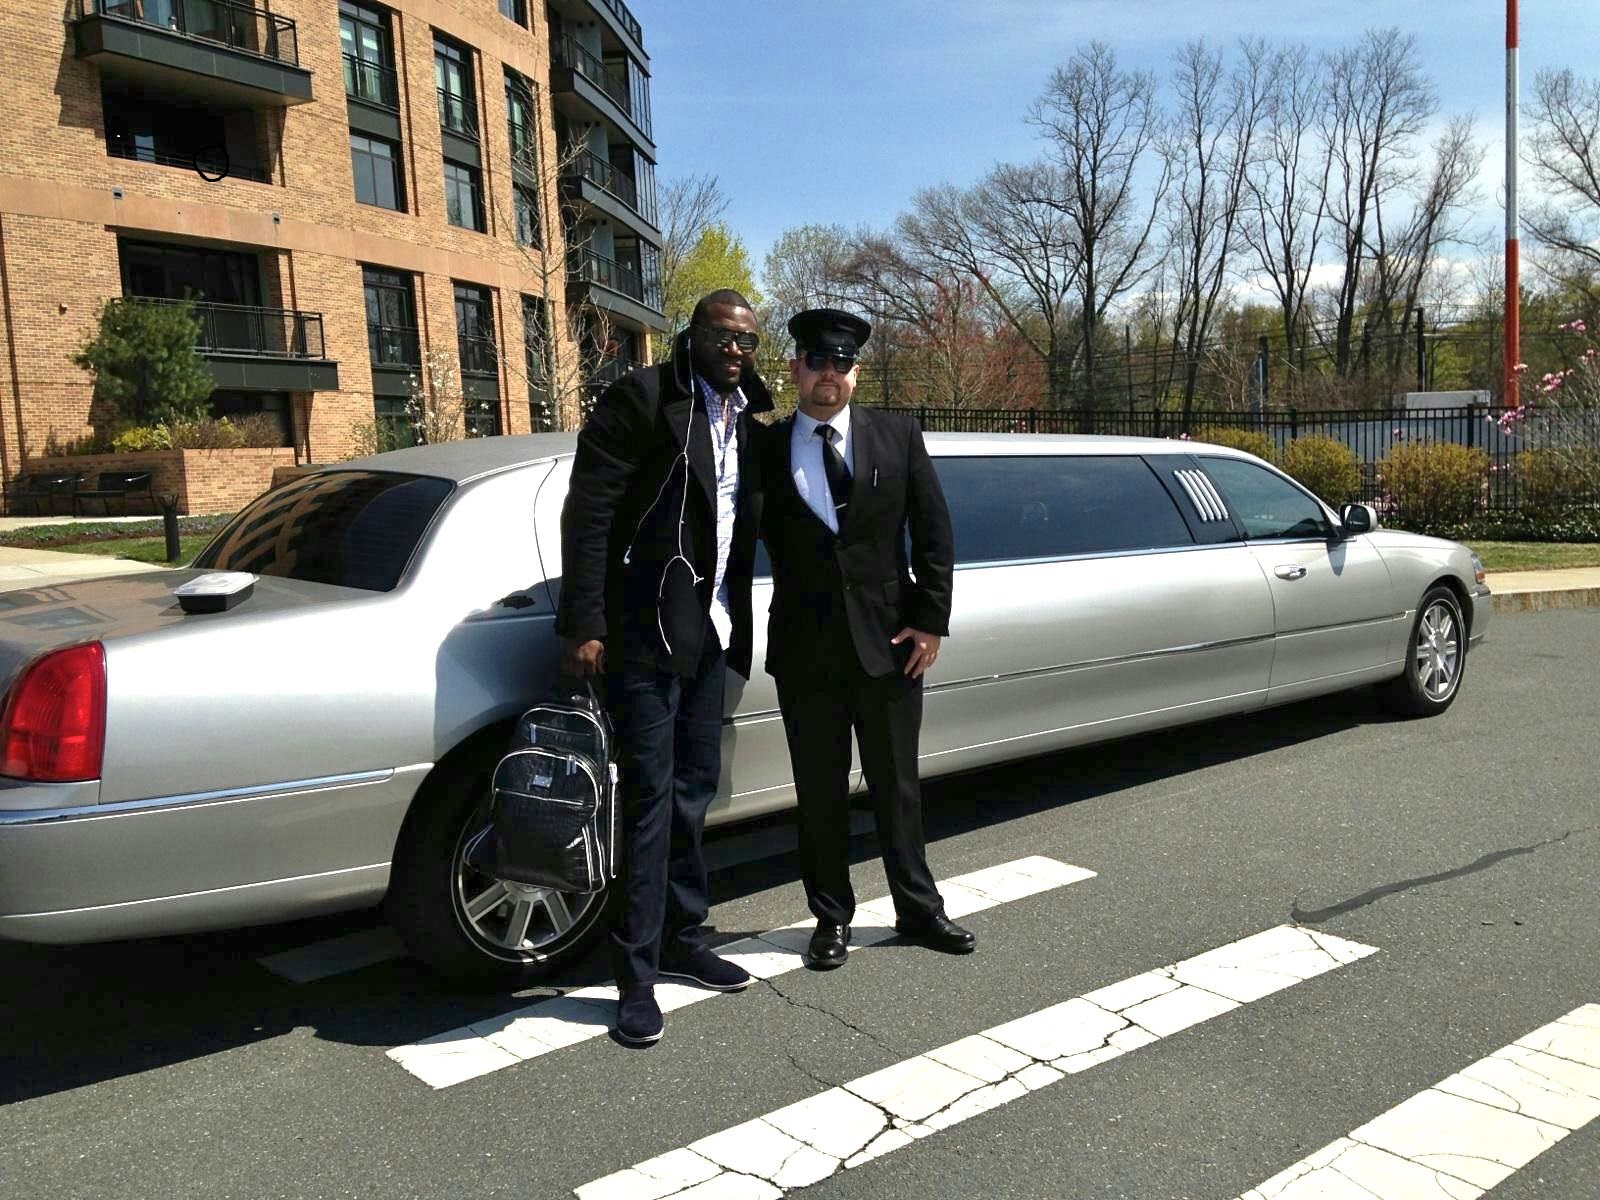 Limos for Rent Northborough MA 01532